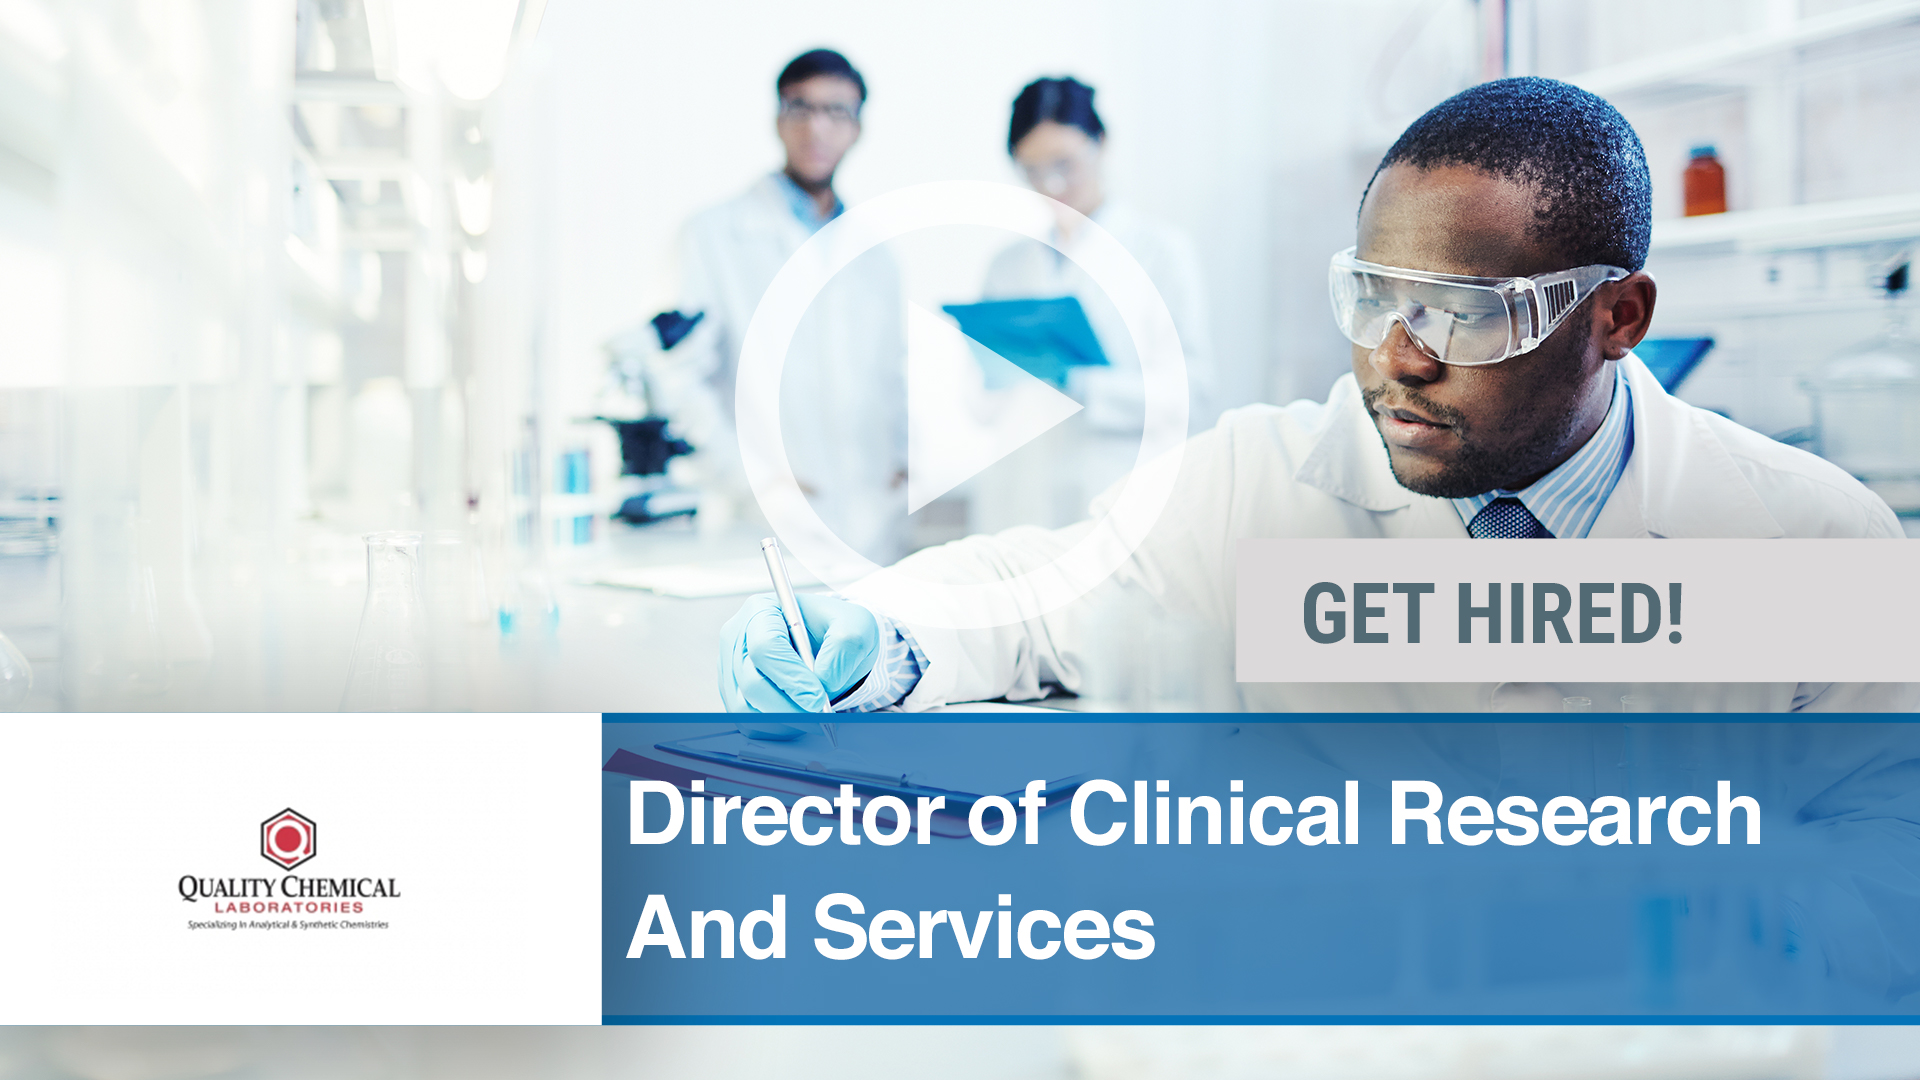 Watch our careers video for available job opening Director of Clinical Research and Services in Wilmington, NC